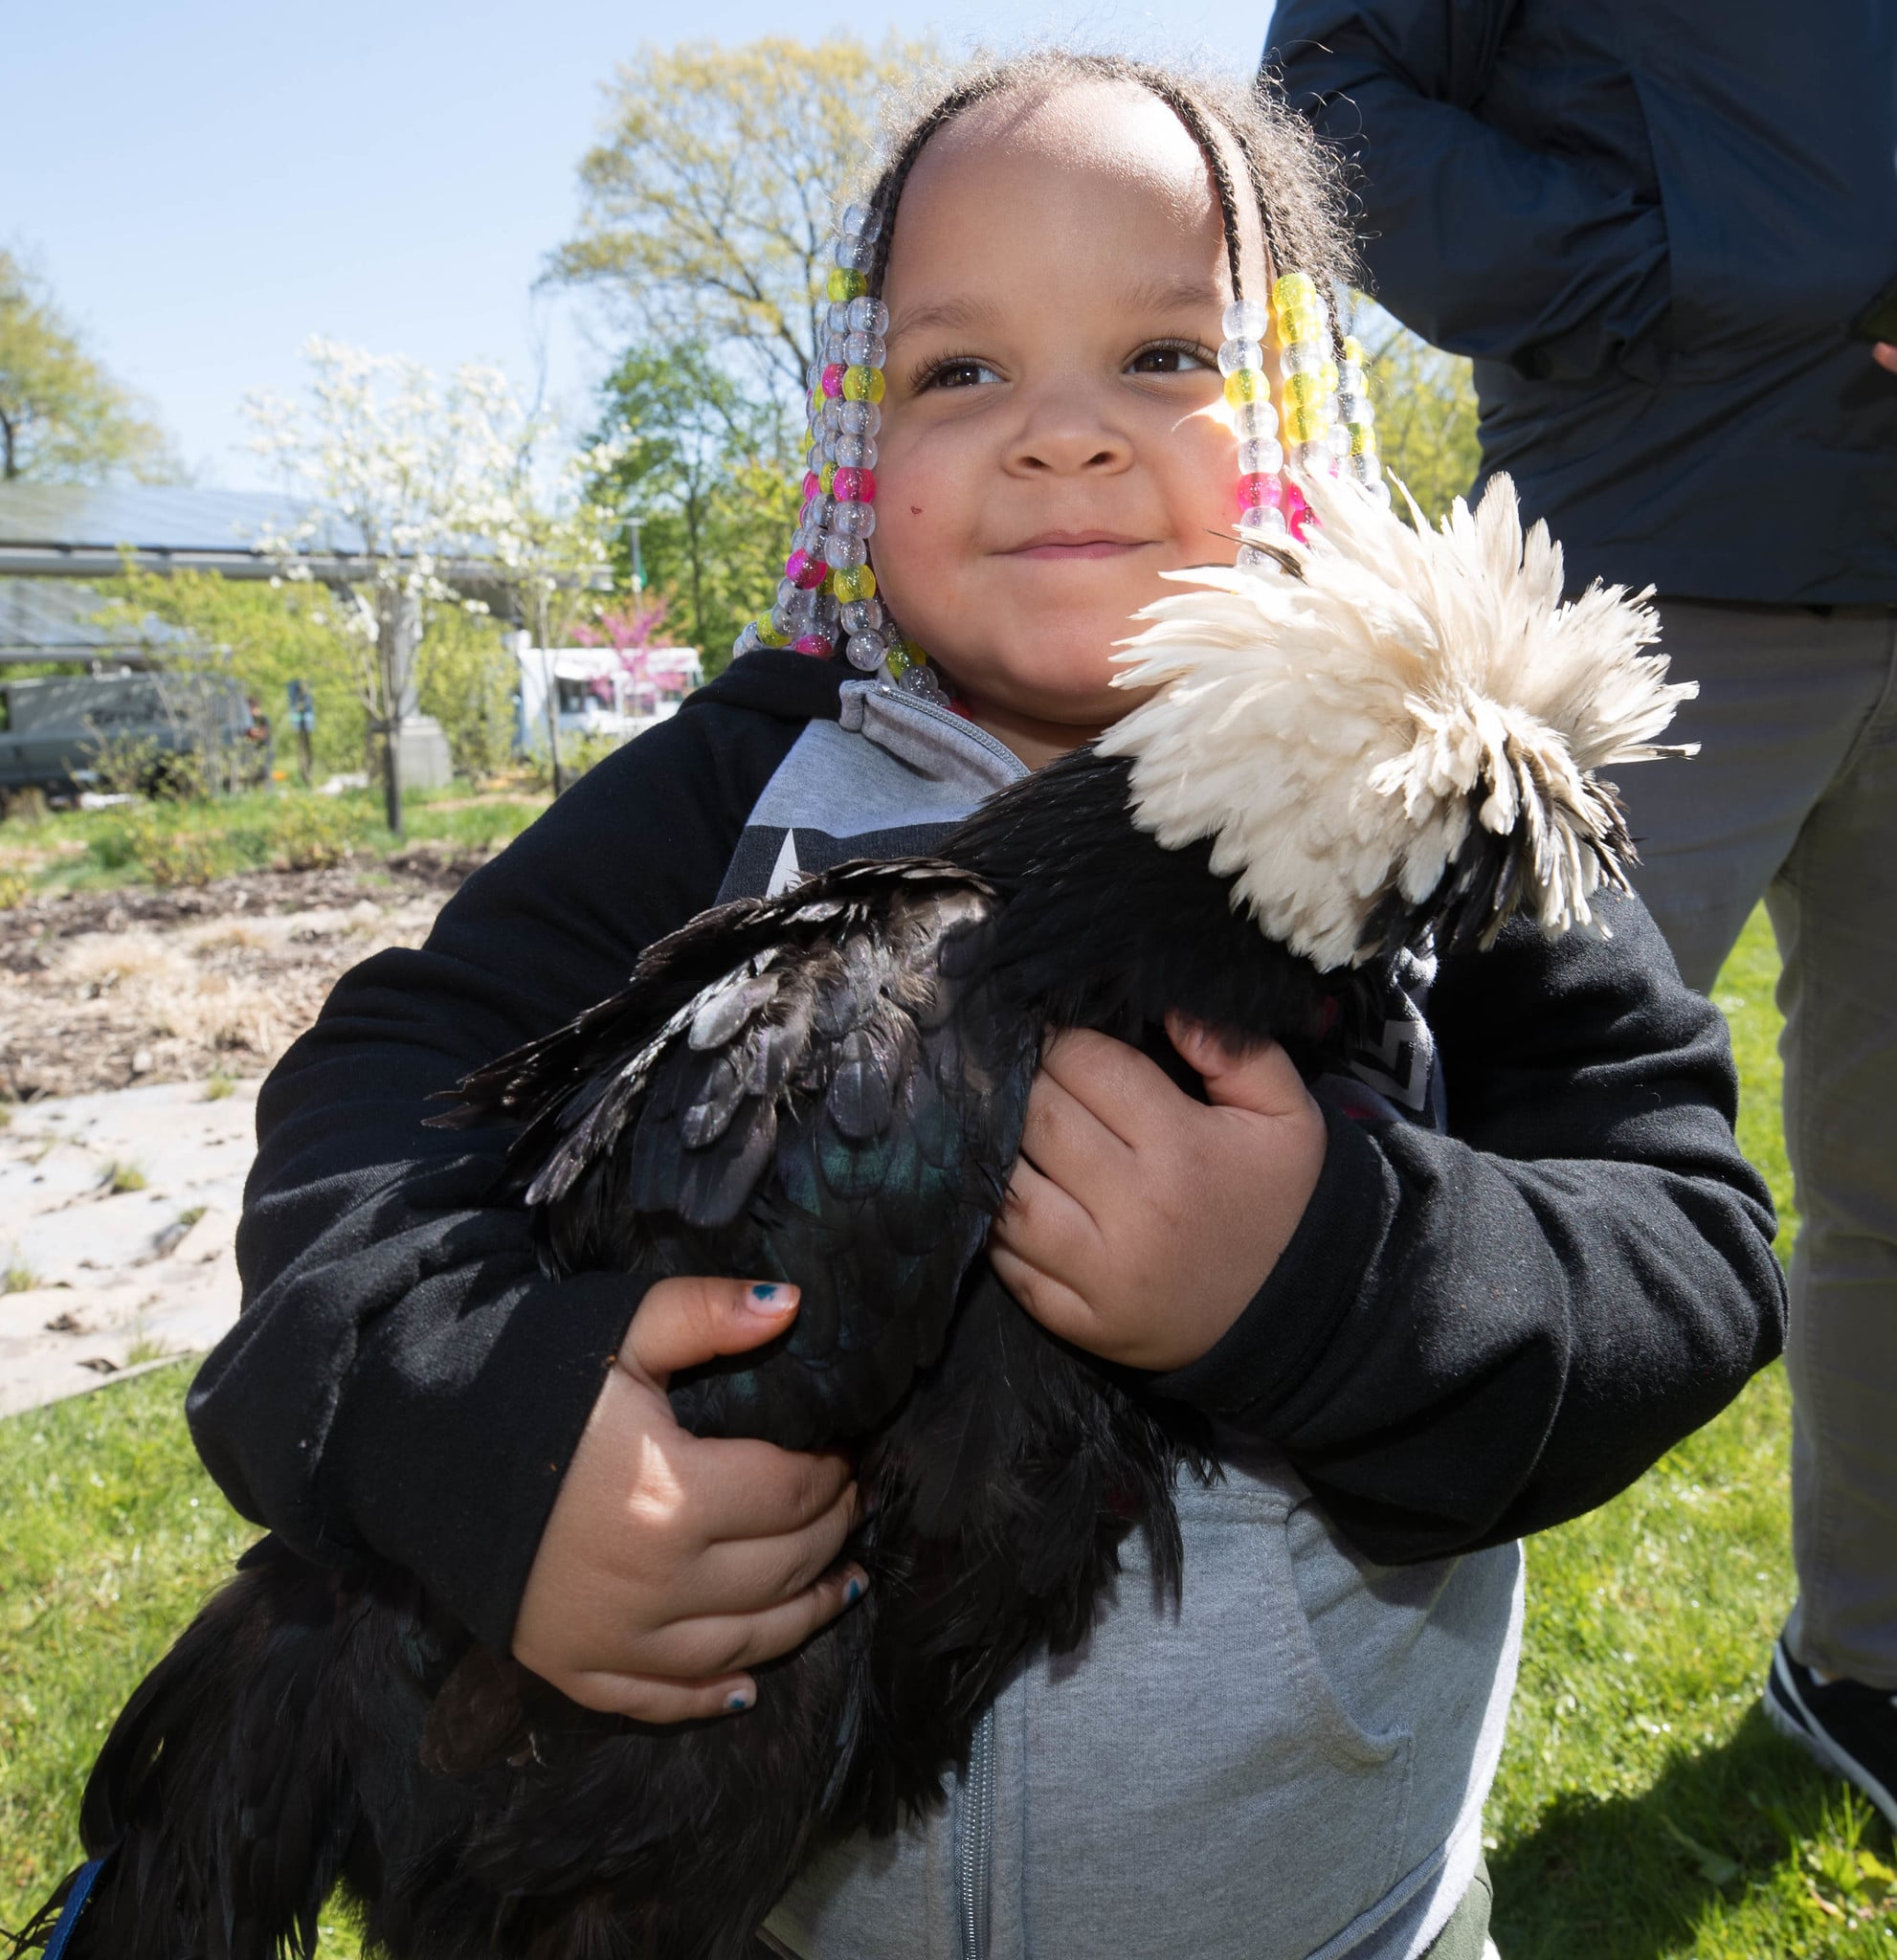 Young girl holding a large bird at Frick Park